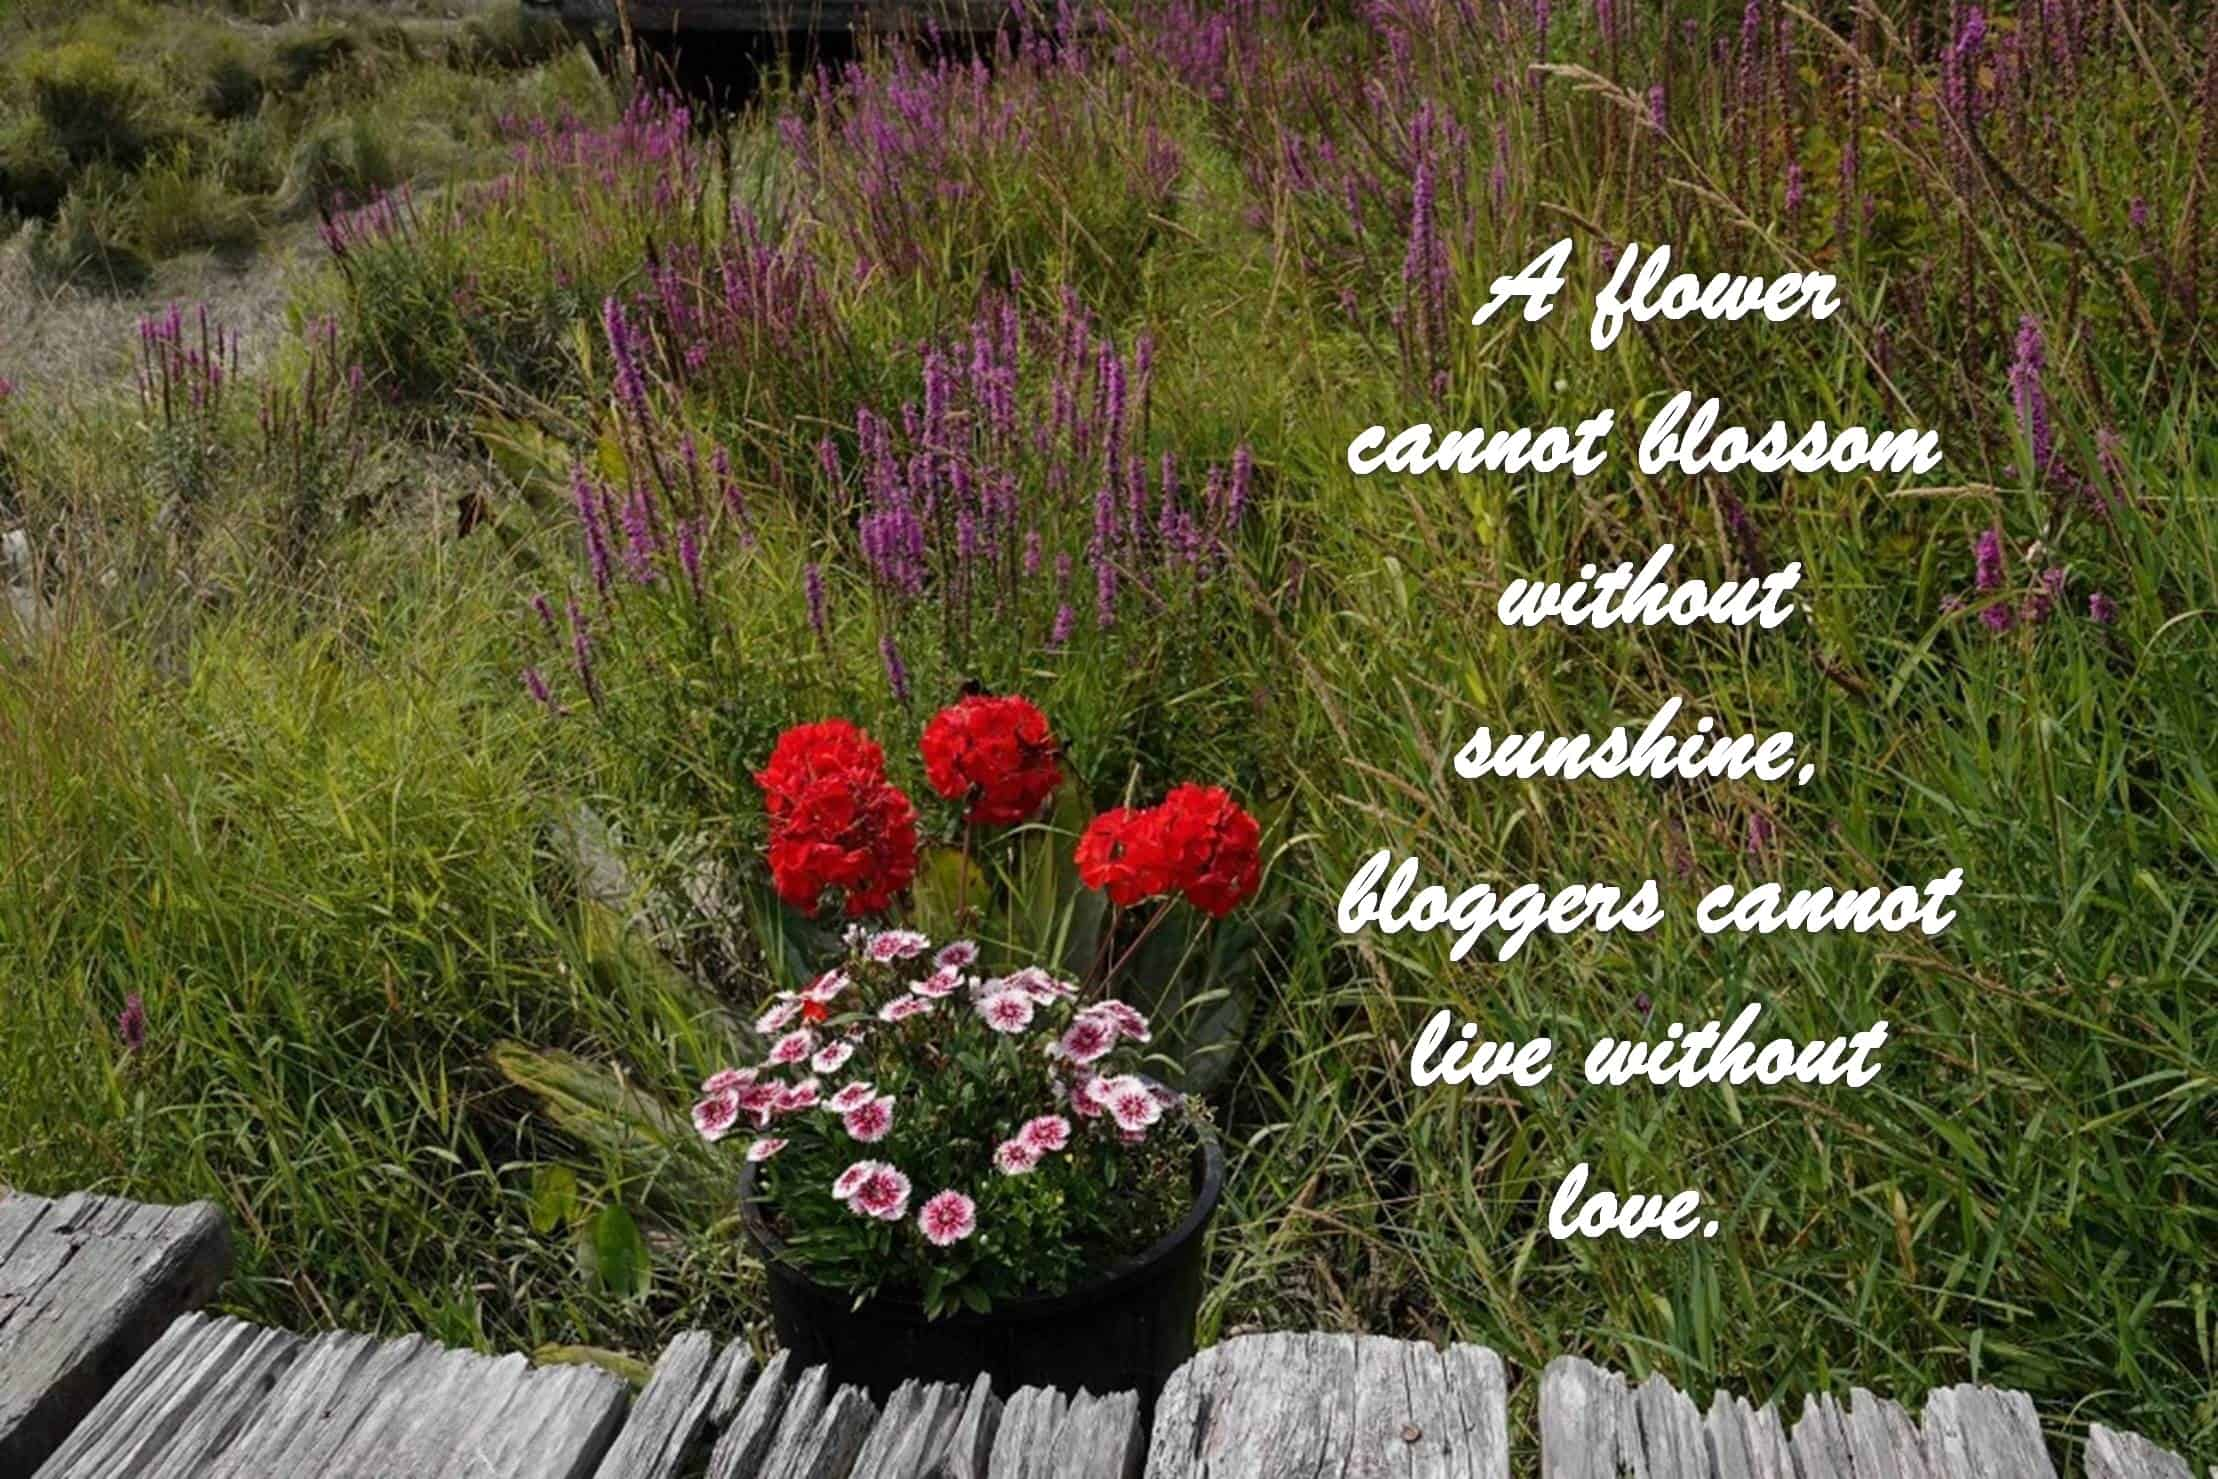 A flower cannot blossom without sunshine, bloggers cannot live without love.